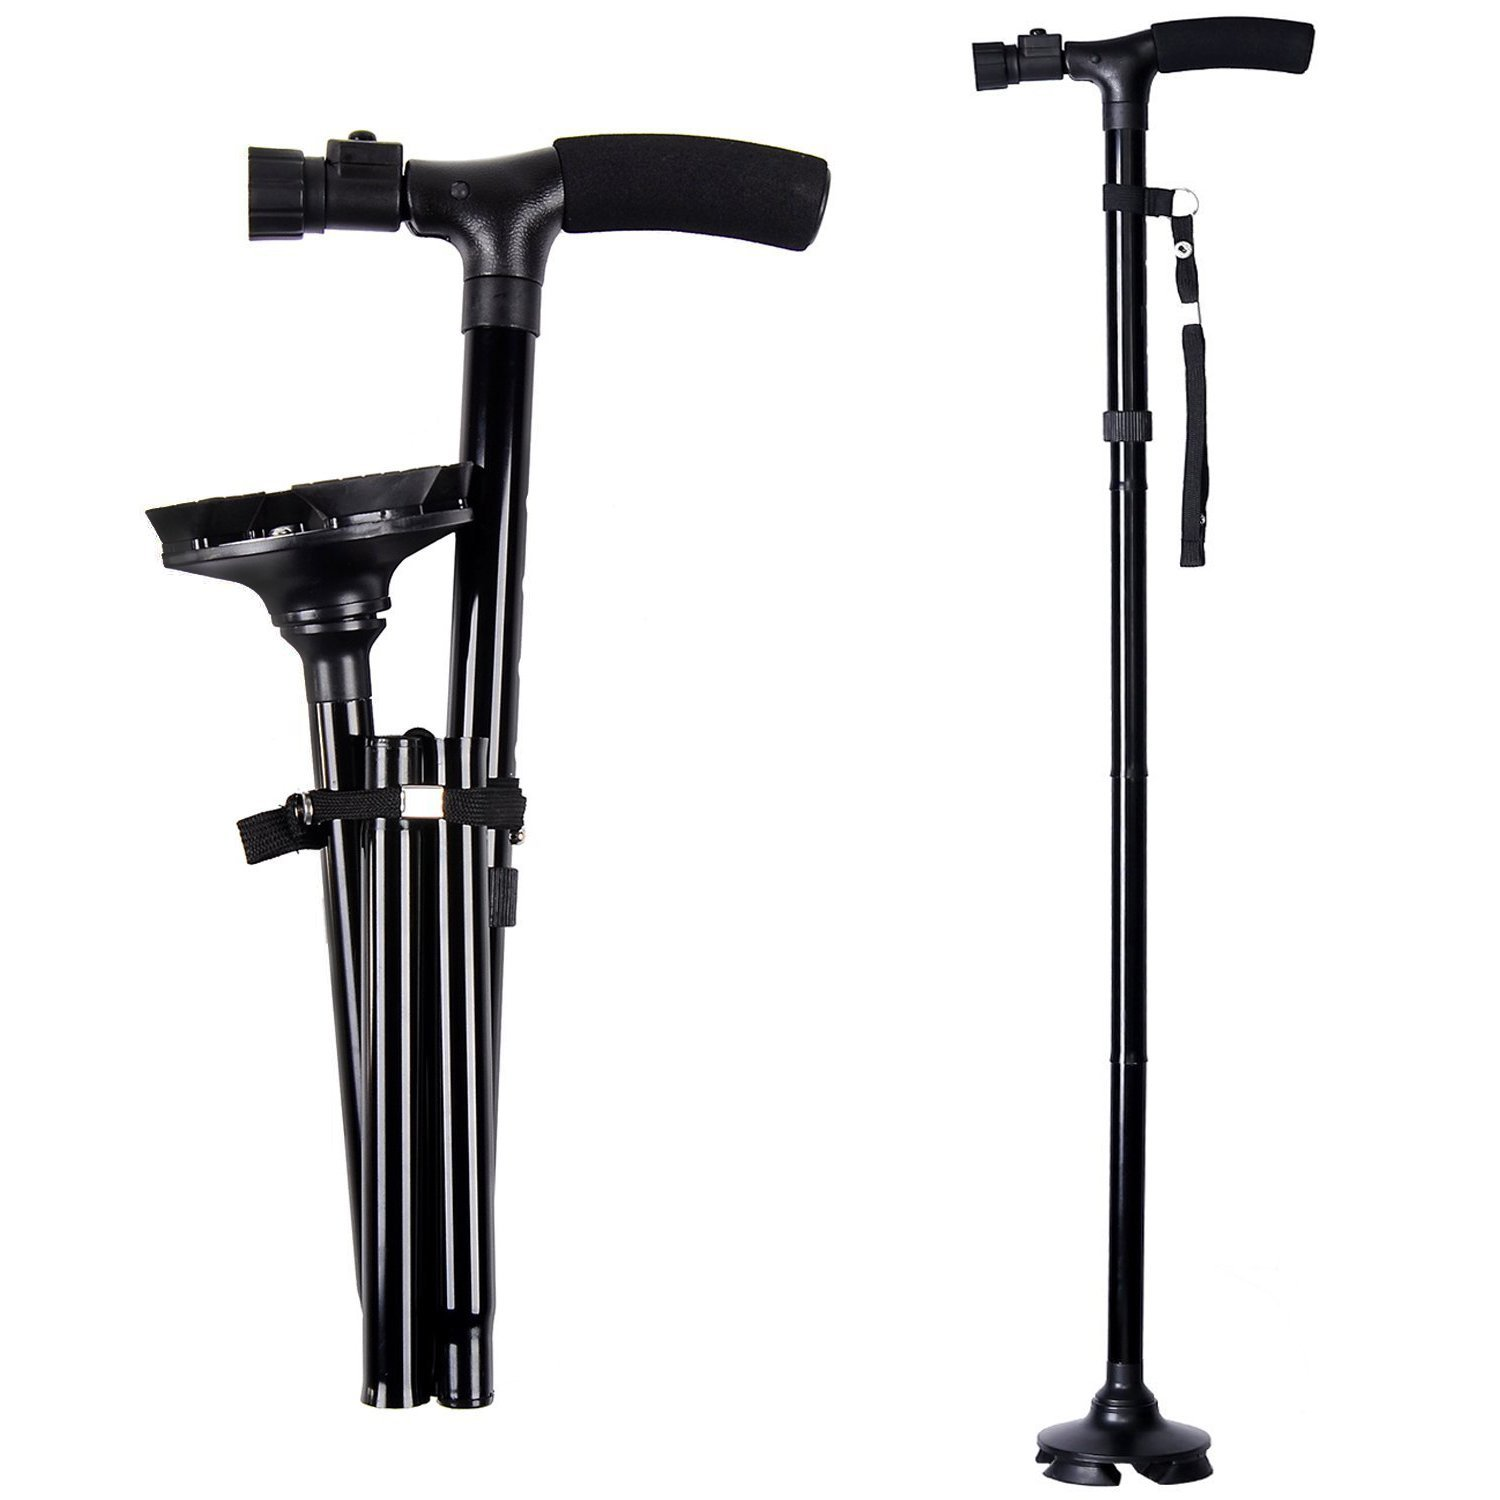 ArmaGedon Folding Cane with Led Light, Adjustable Canes and Walking Sticks for Men and Women, Walking Cane Stick for Elderly with Cushion T Handle and Pivoting Quad Base